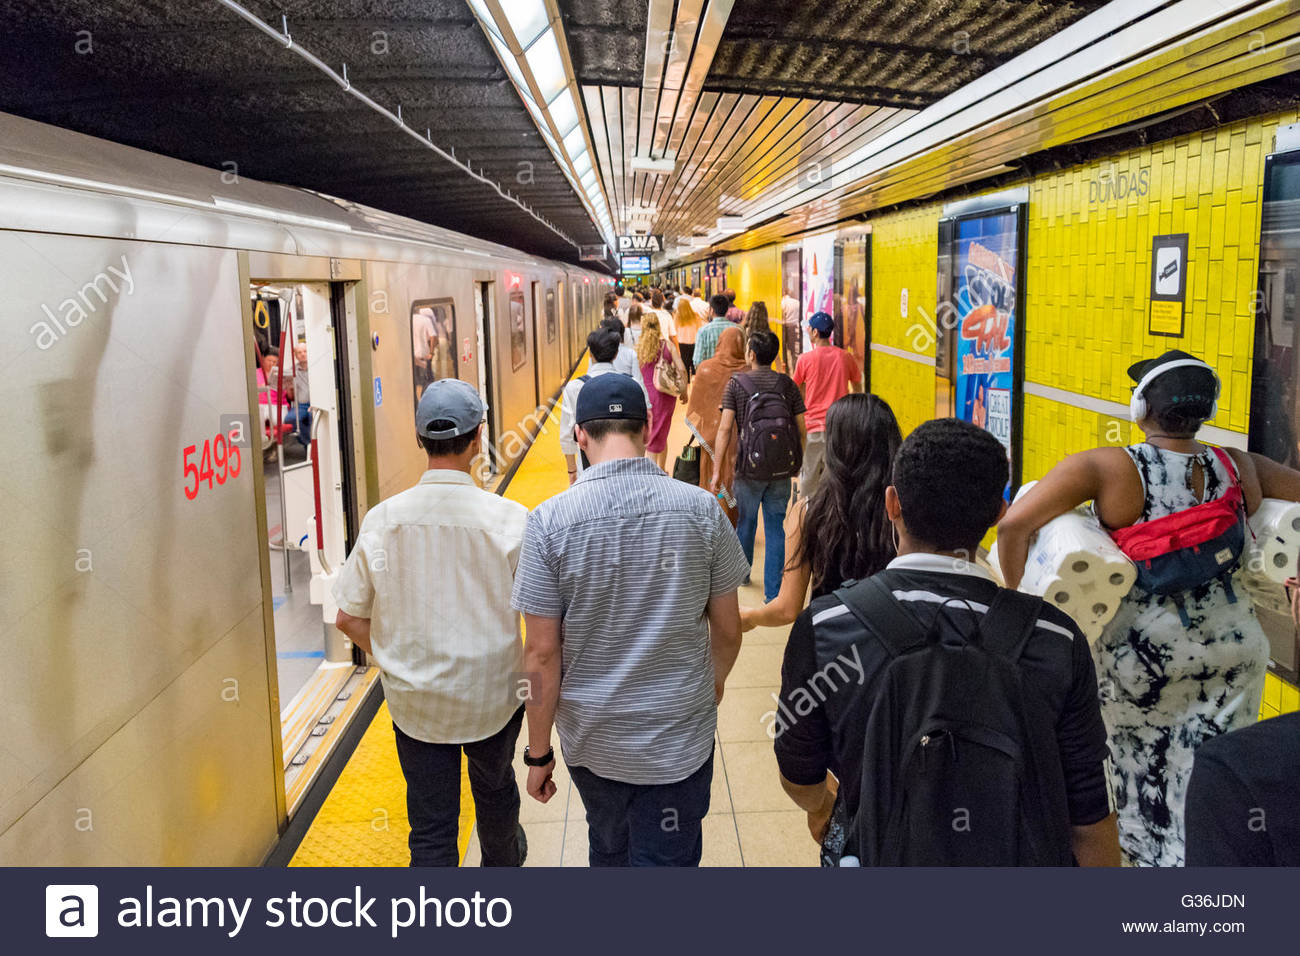 People Getting Off Subway Train Stock Photos & People ...